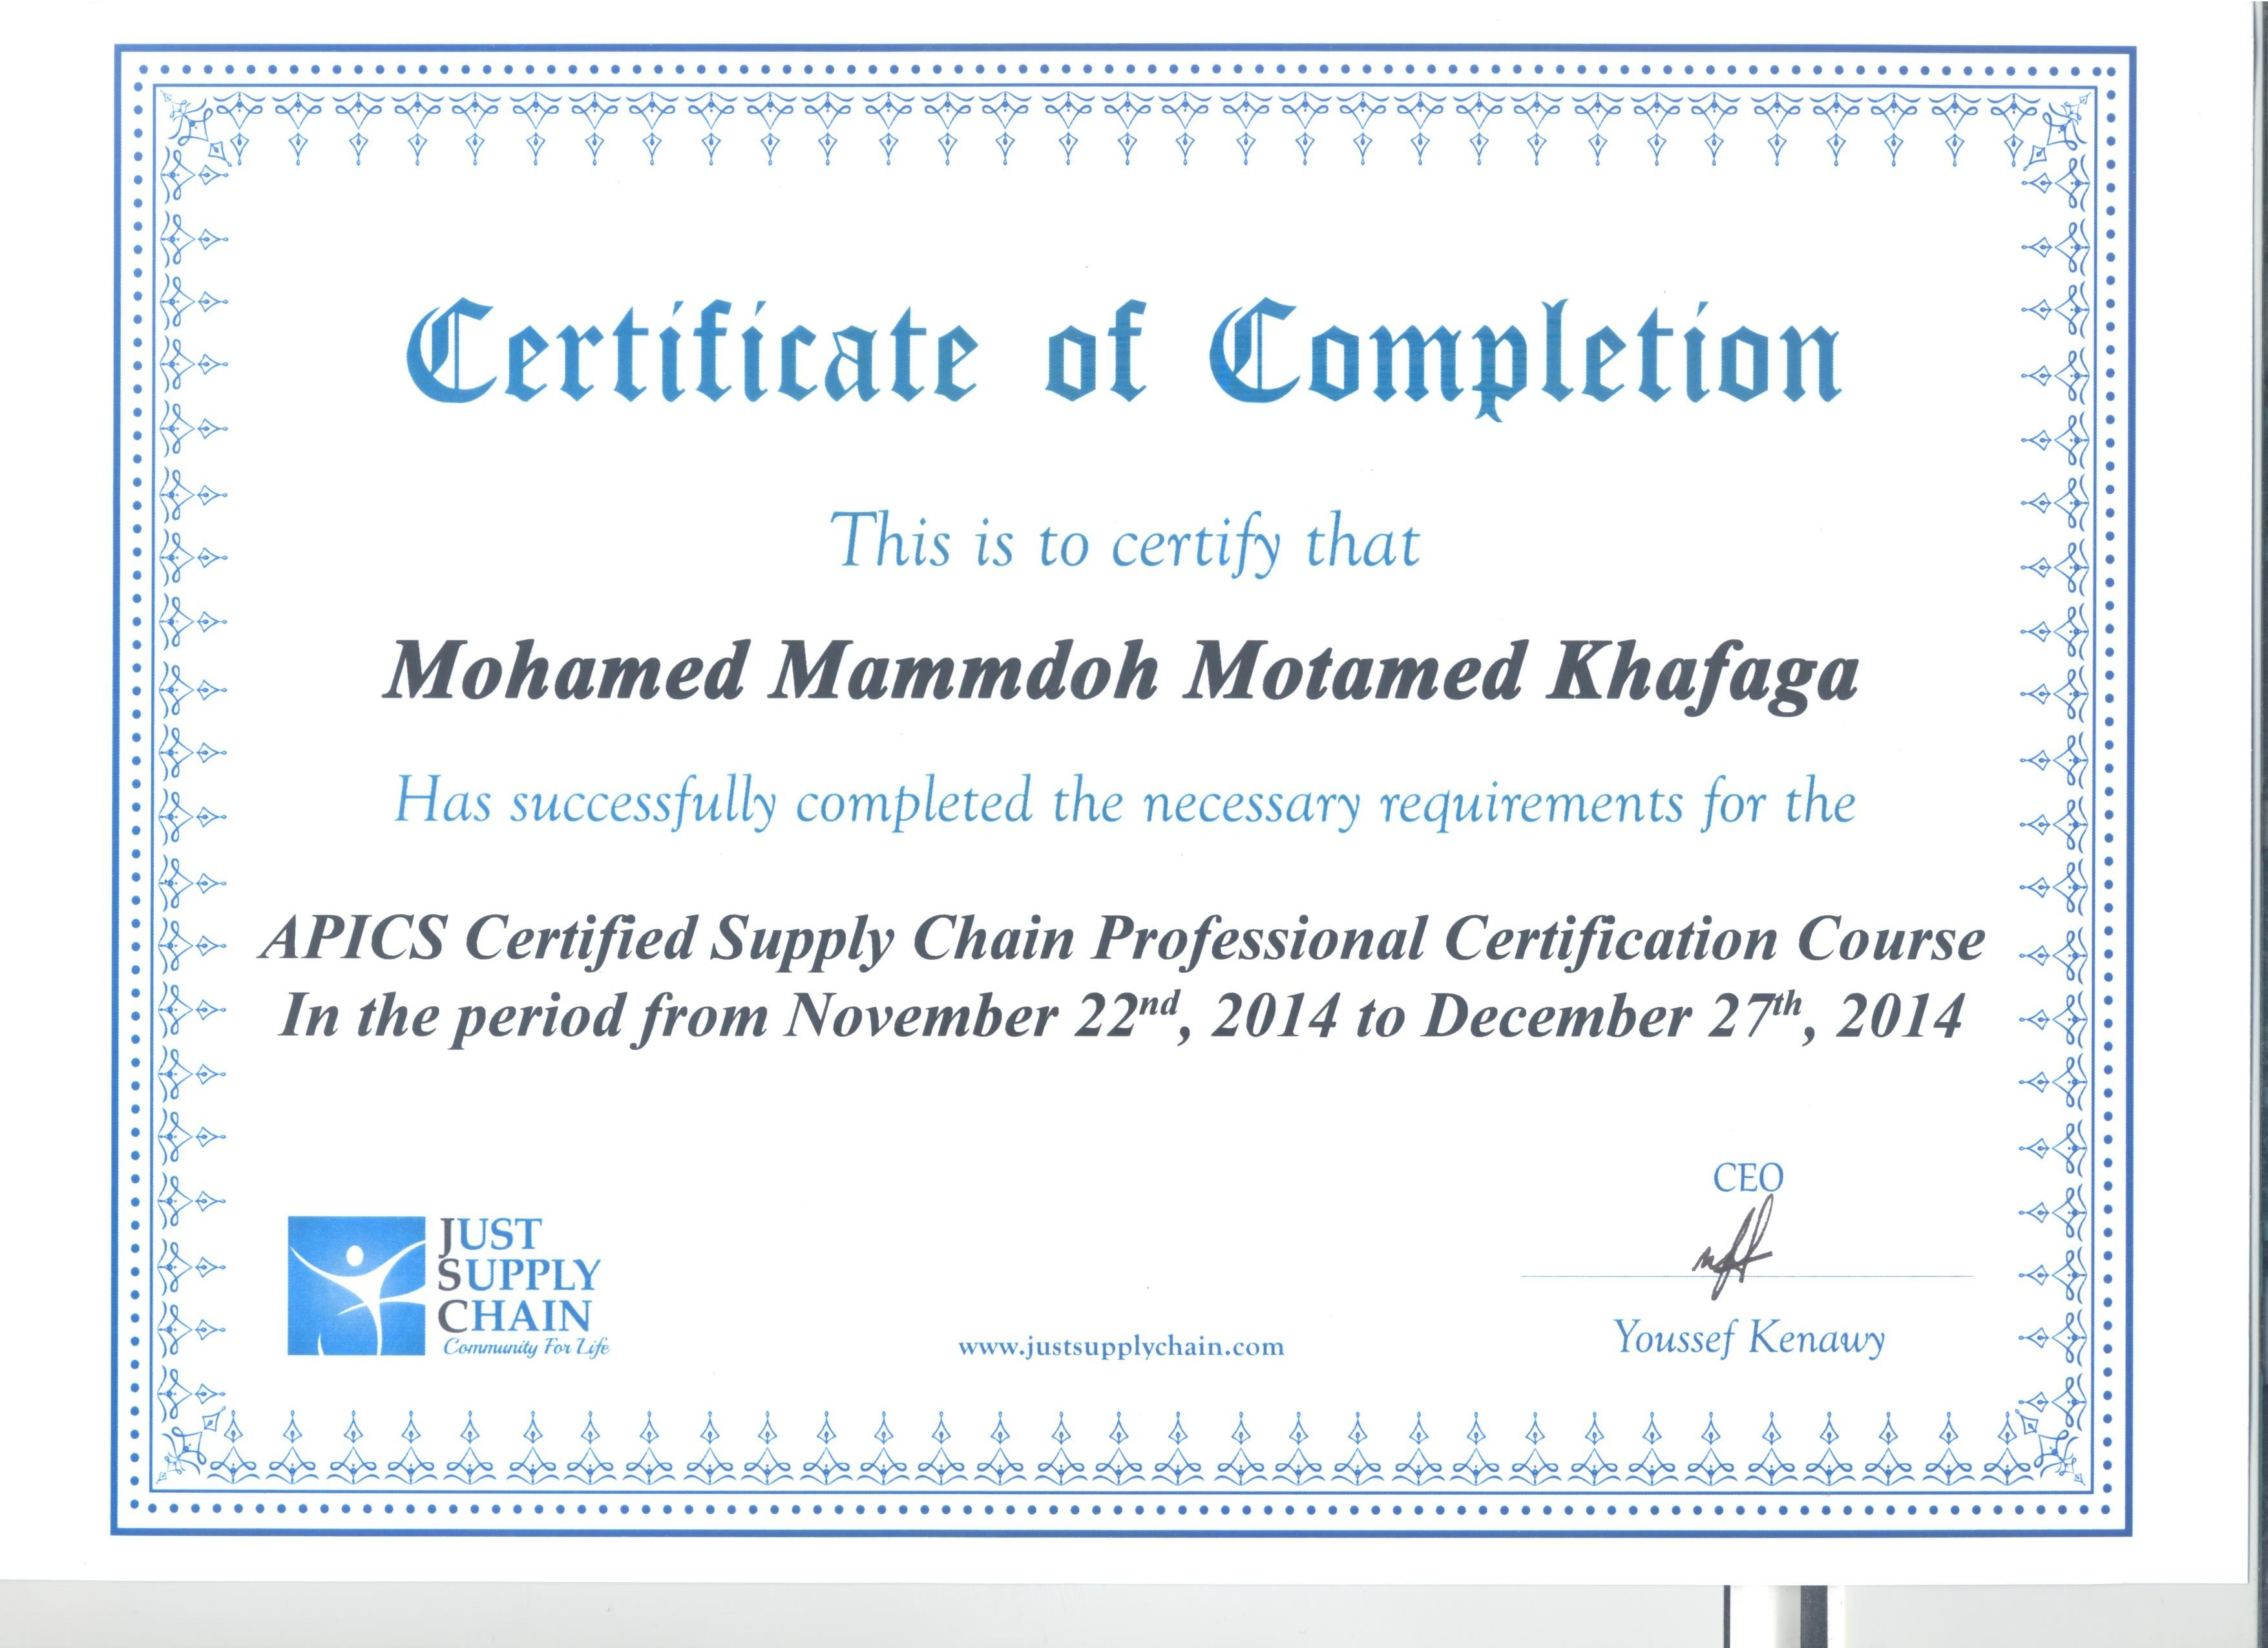 Mohamed mammdouh bayt apics supply chain professional certificate certificate xflitez Choice Image